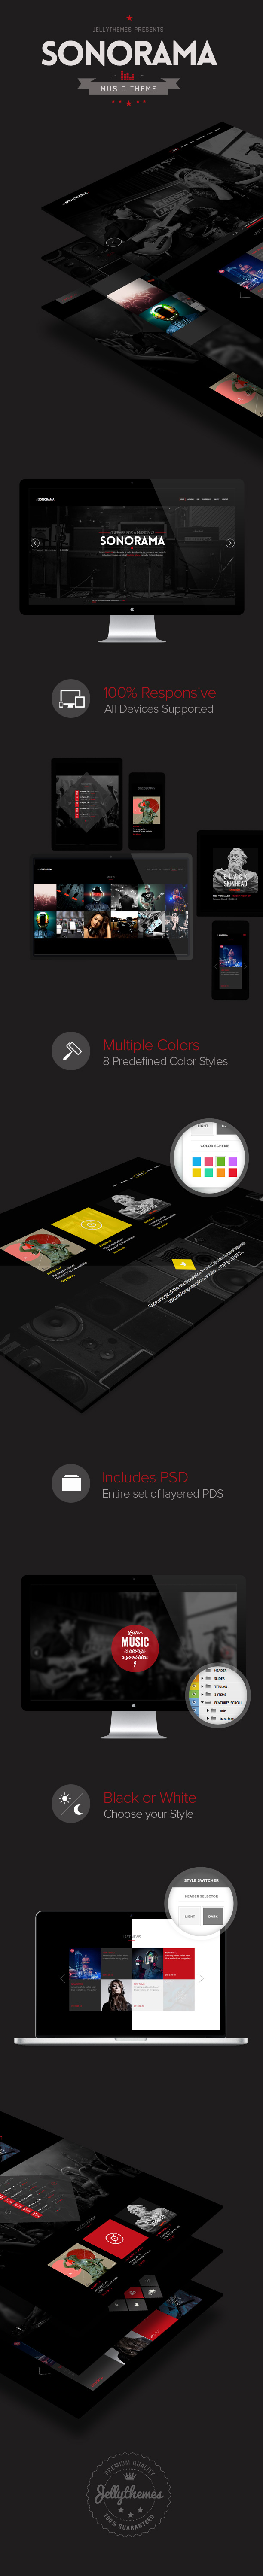 Sonorama - Onepage Music Template - 3